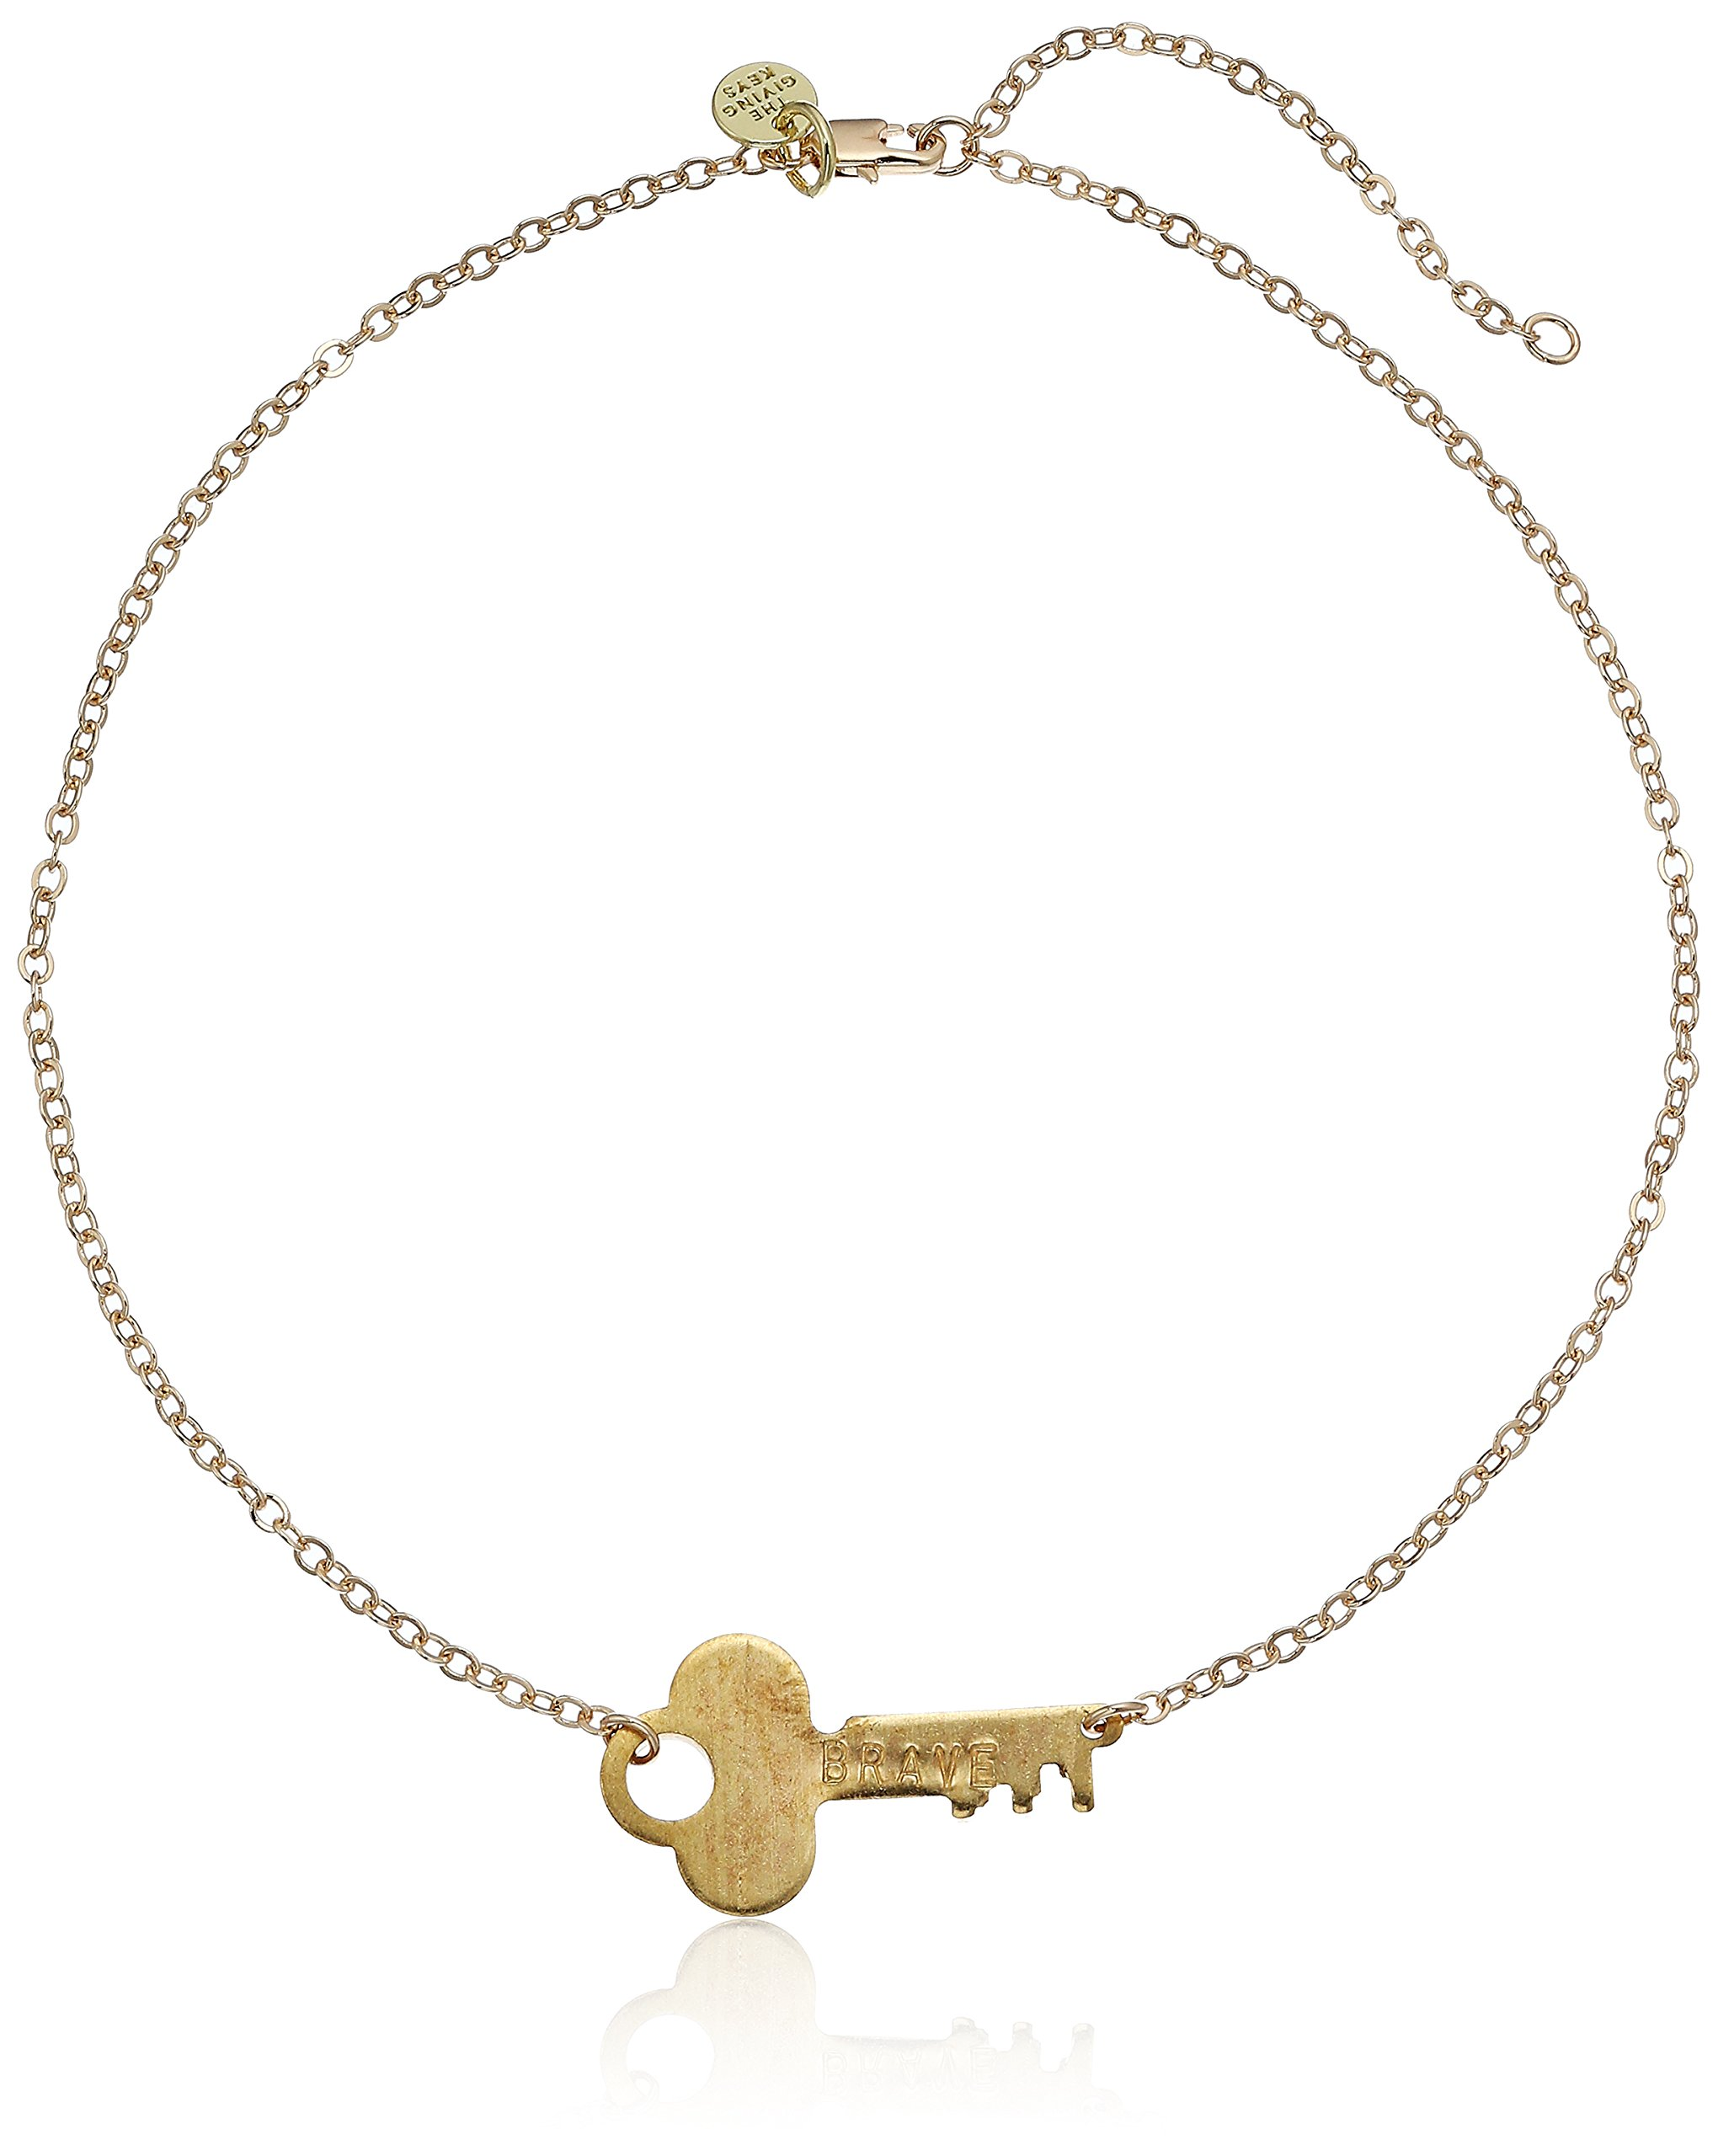 The Giving Keys BRAVE Neverending Gold Choker Necklace